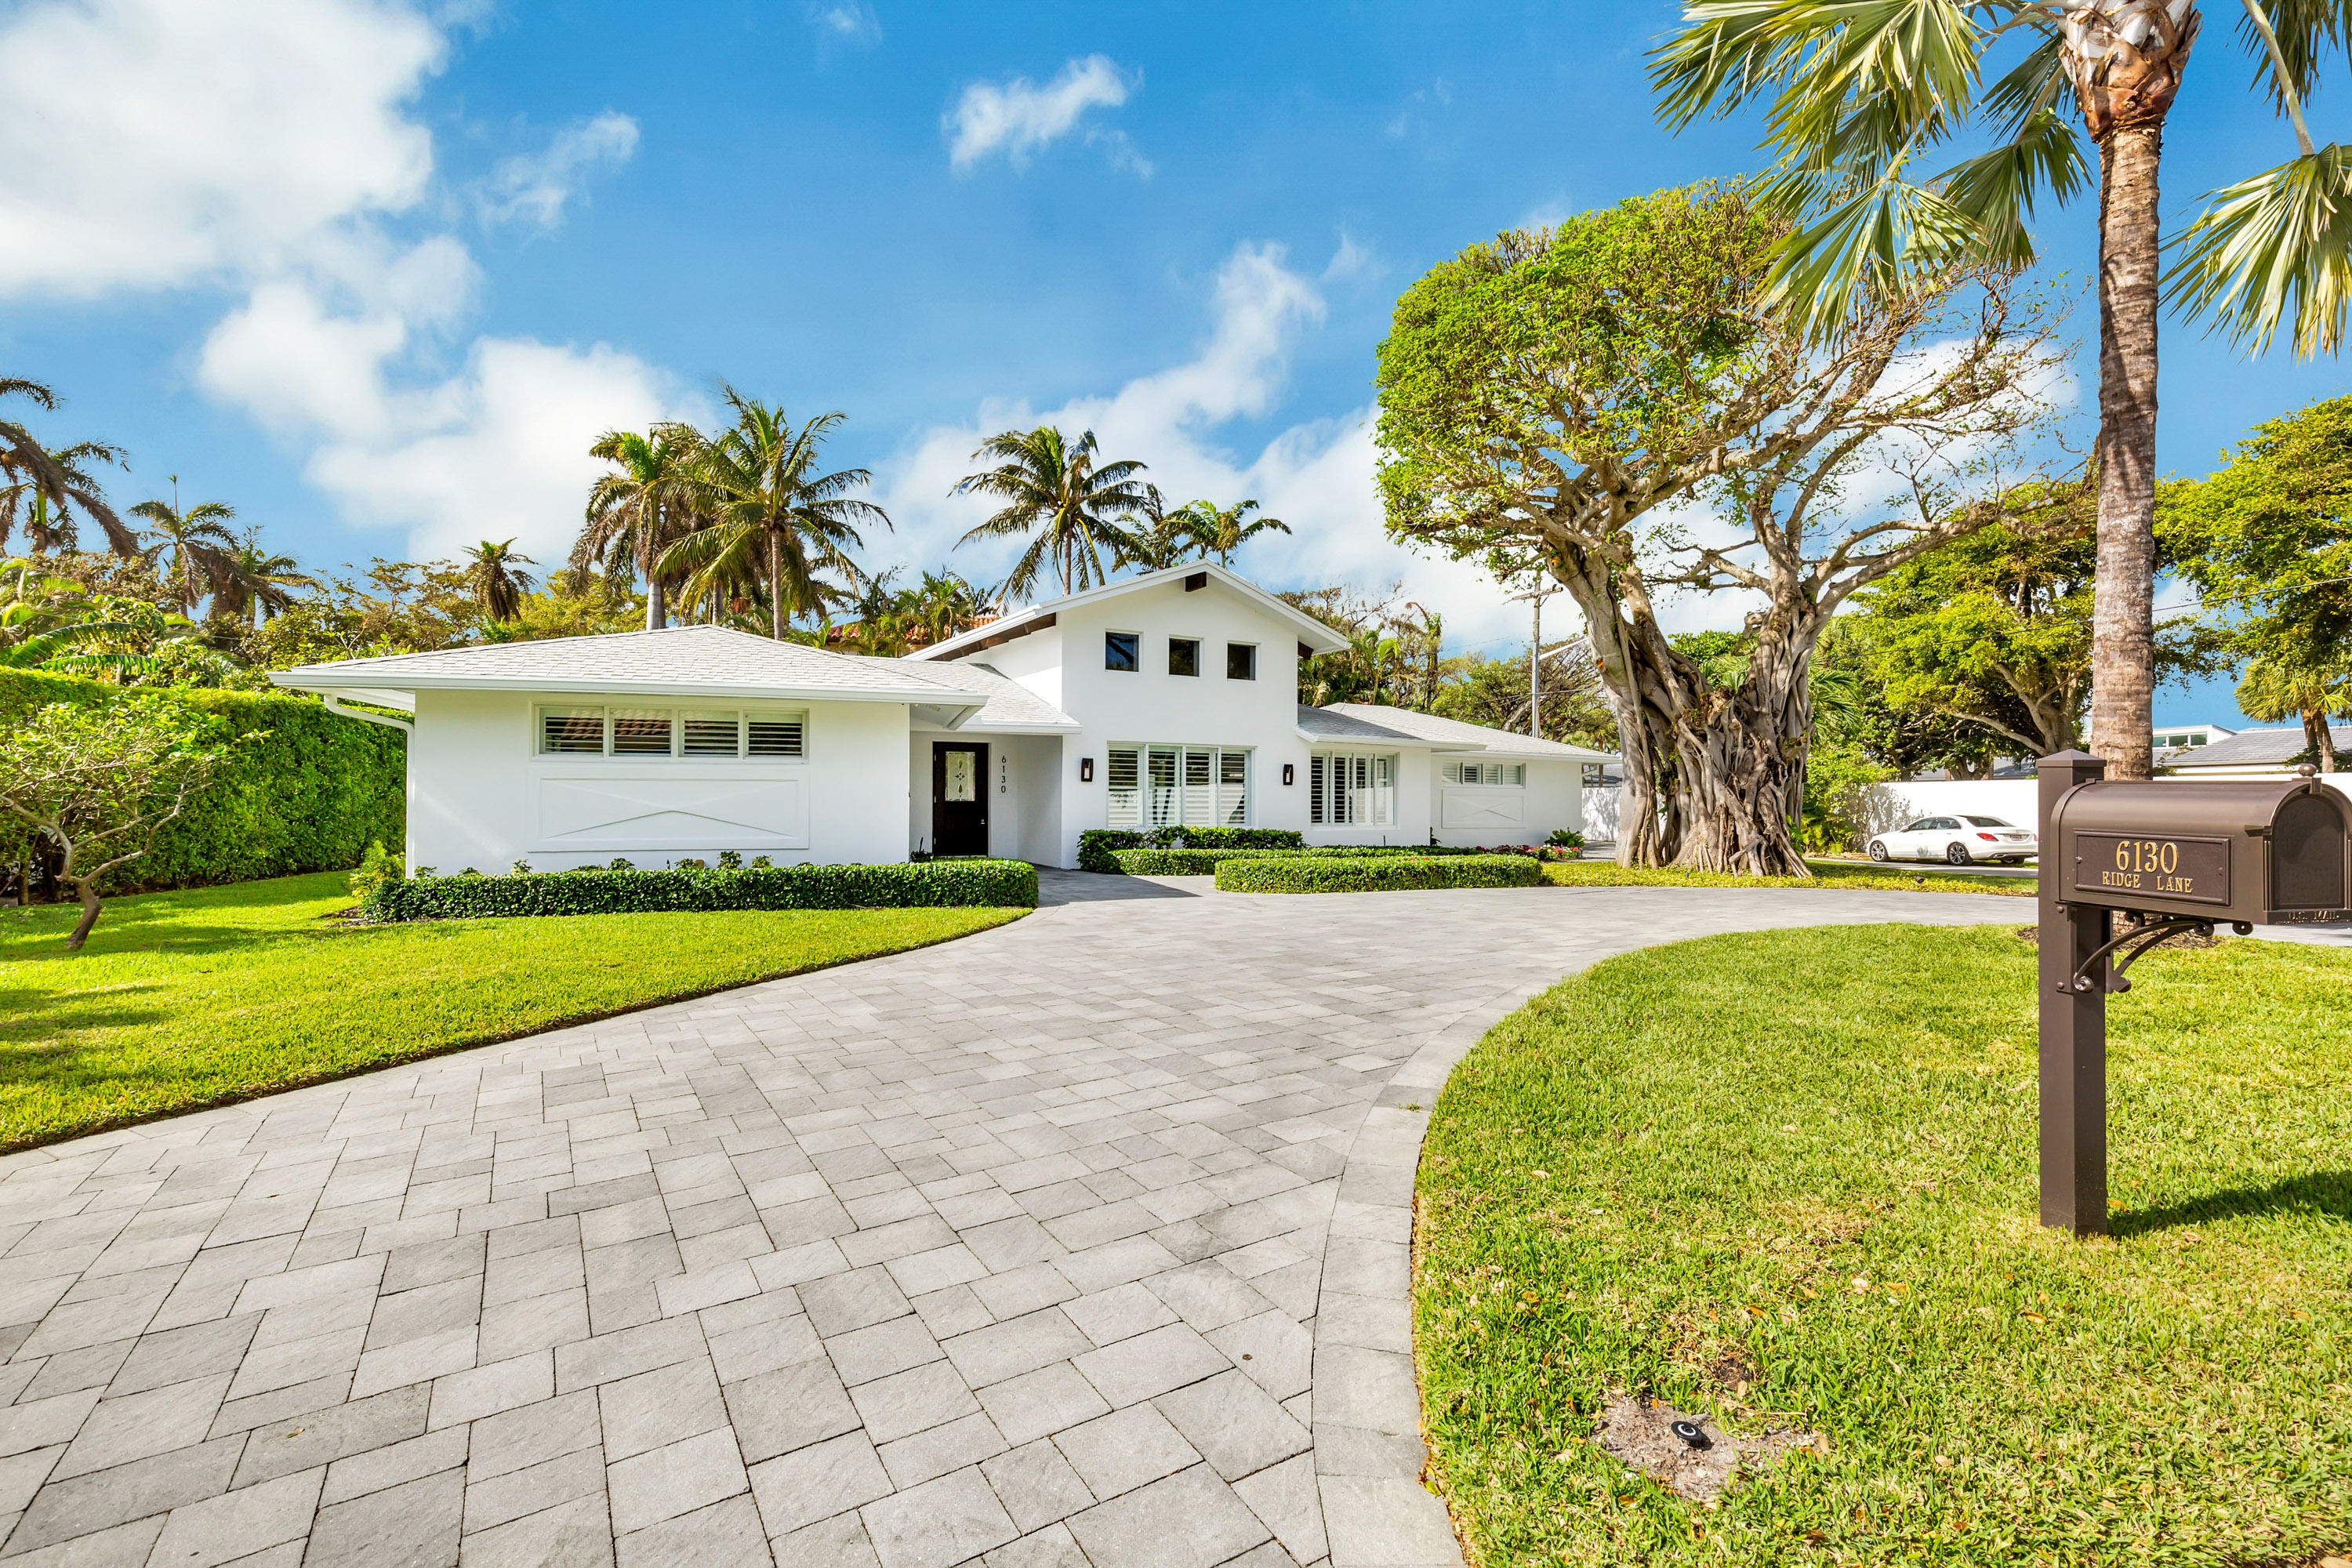 6130 Ridge Lane, Ocean Ridge, Florida 33435, 3 Bedrooms Bedrooms, ,2 BathroomsBathrooms,Single Family Detached,For Sale,Ridge,RX-10676537